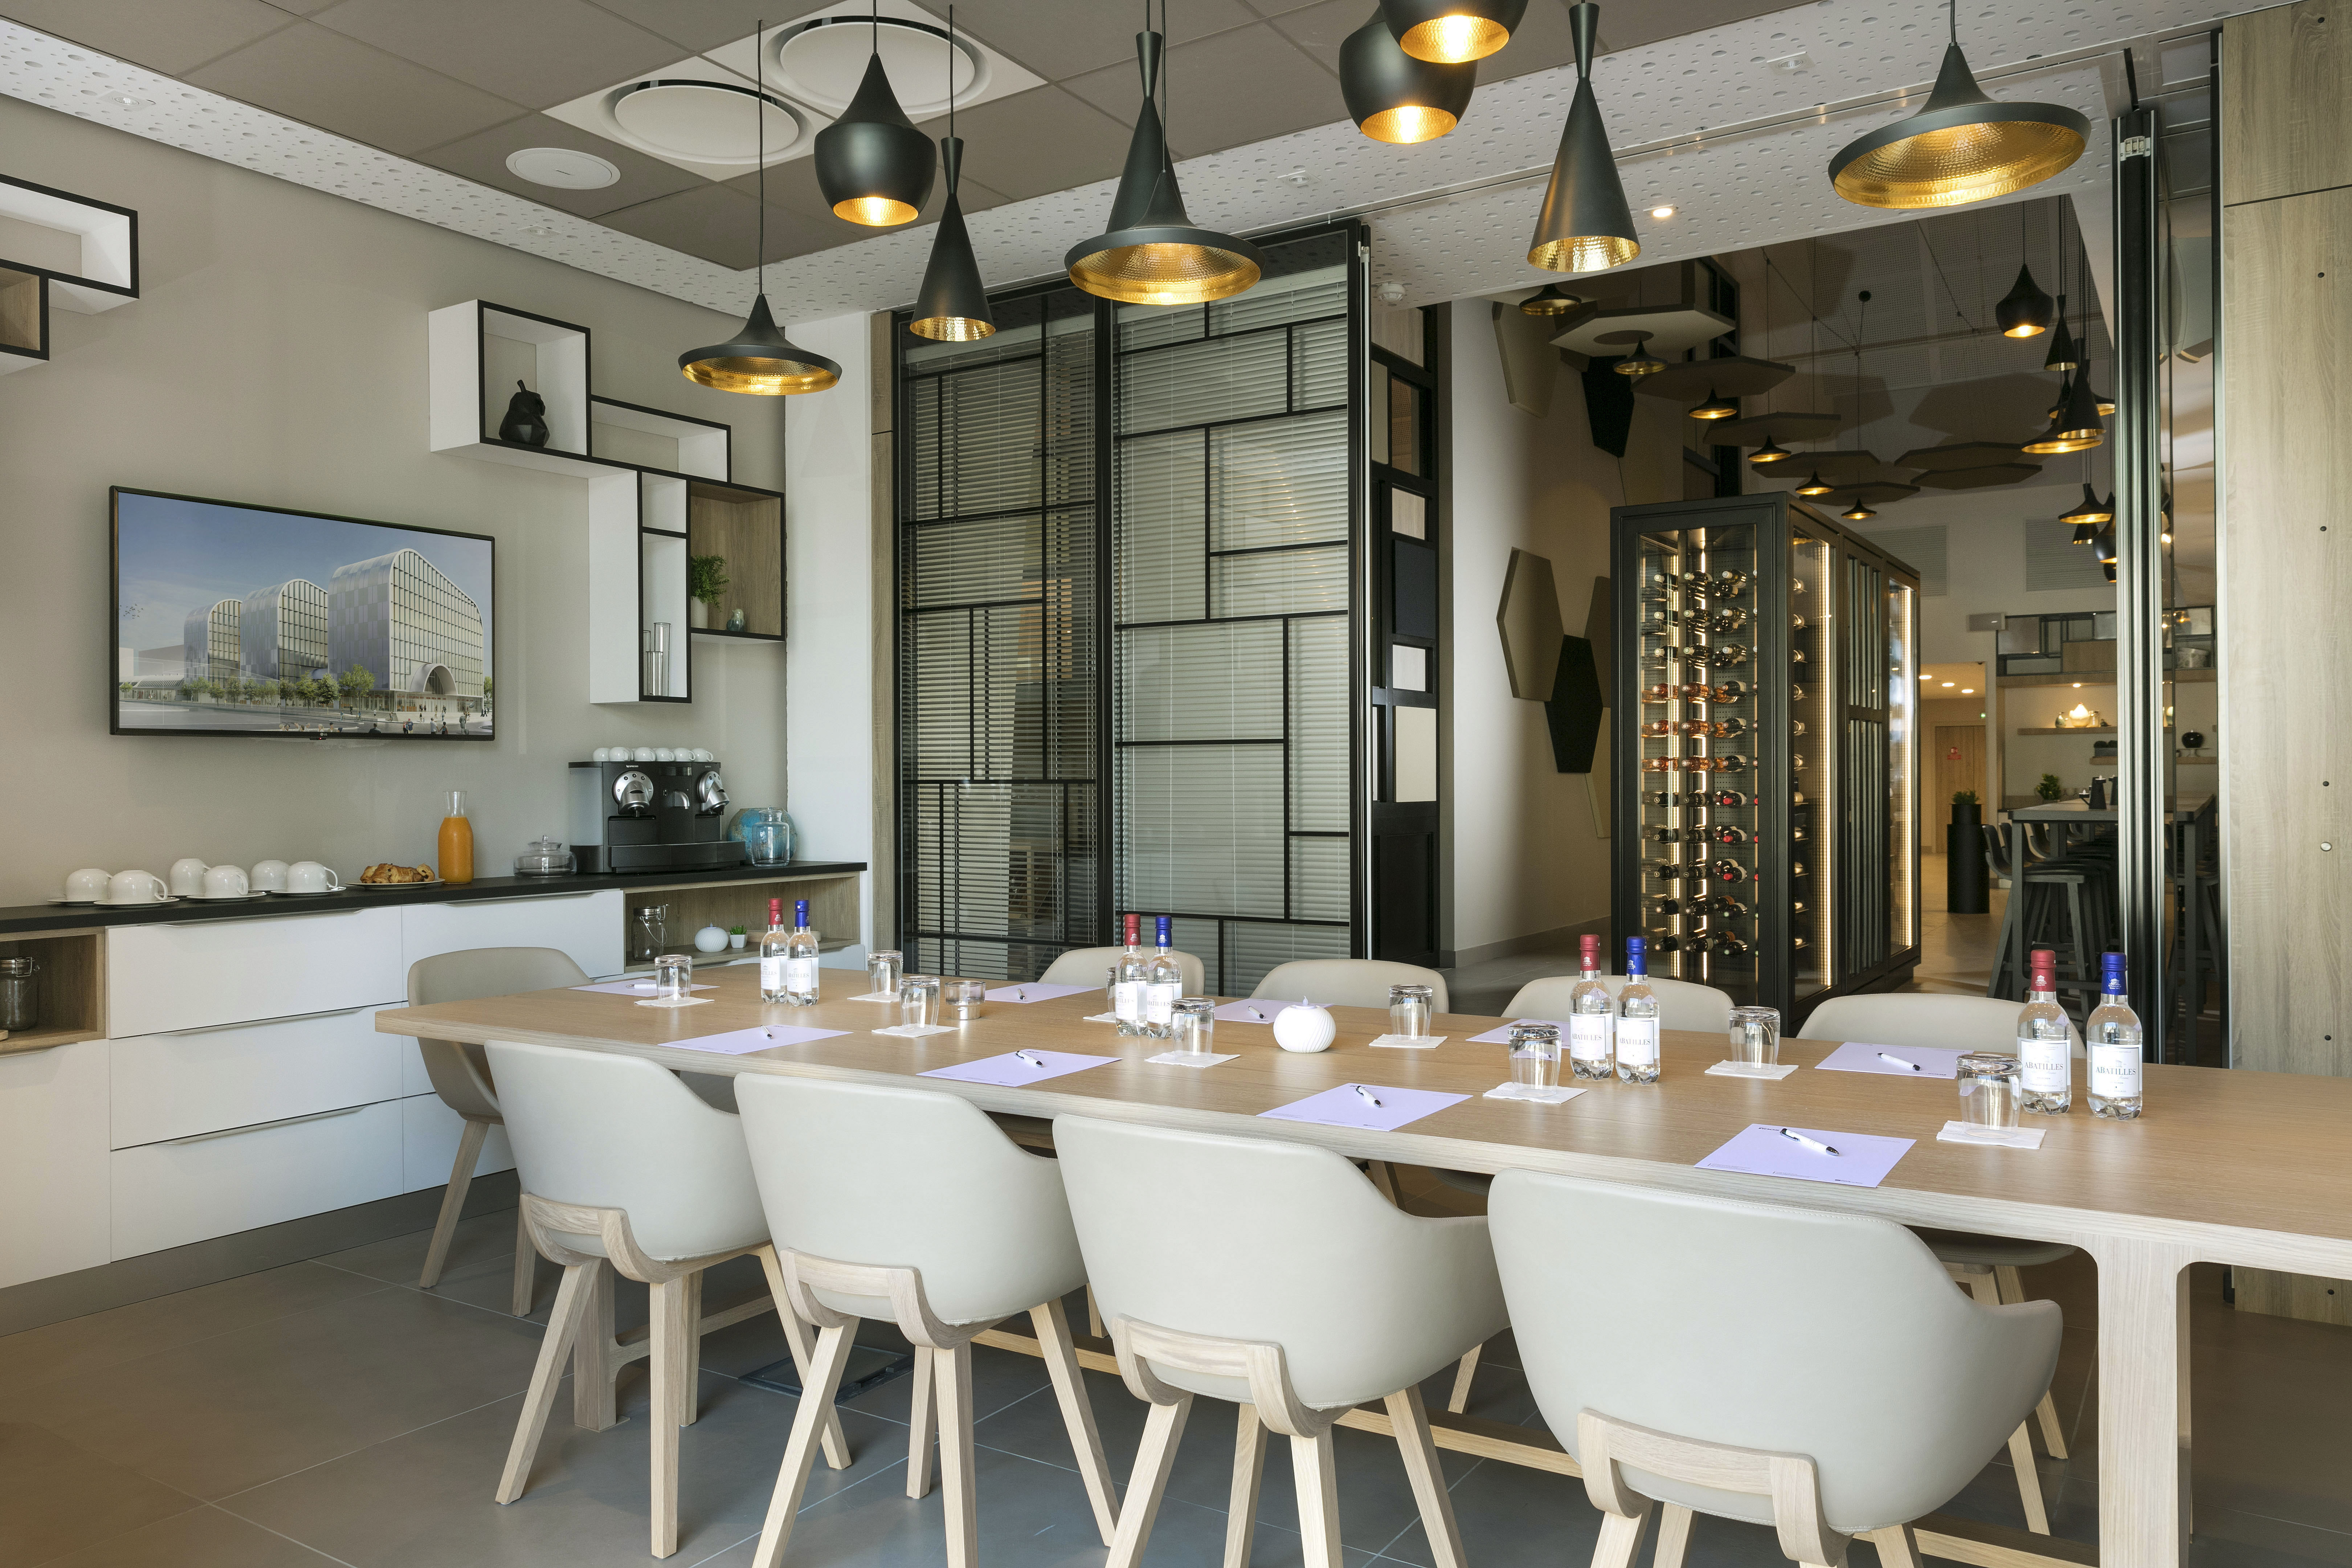 Hilton Garden Inn Enters France And Zambia  Expands In The